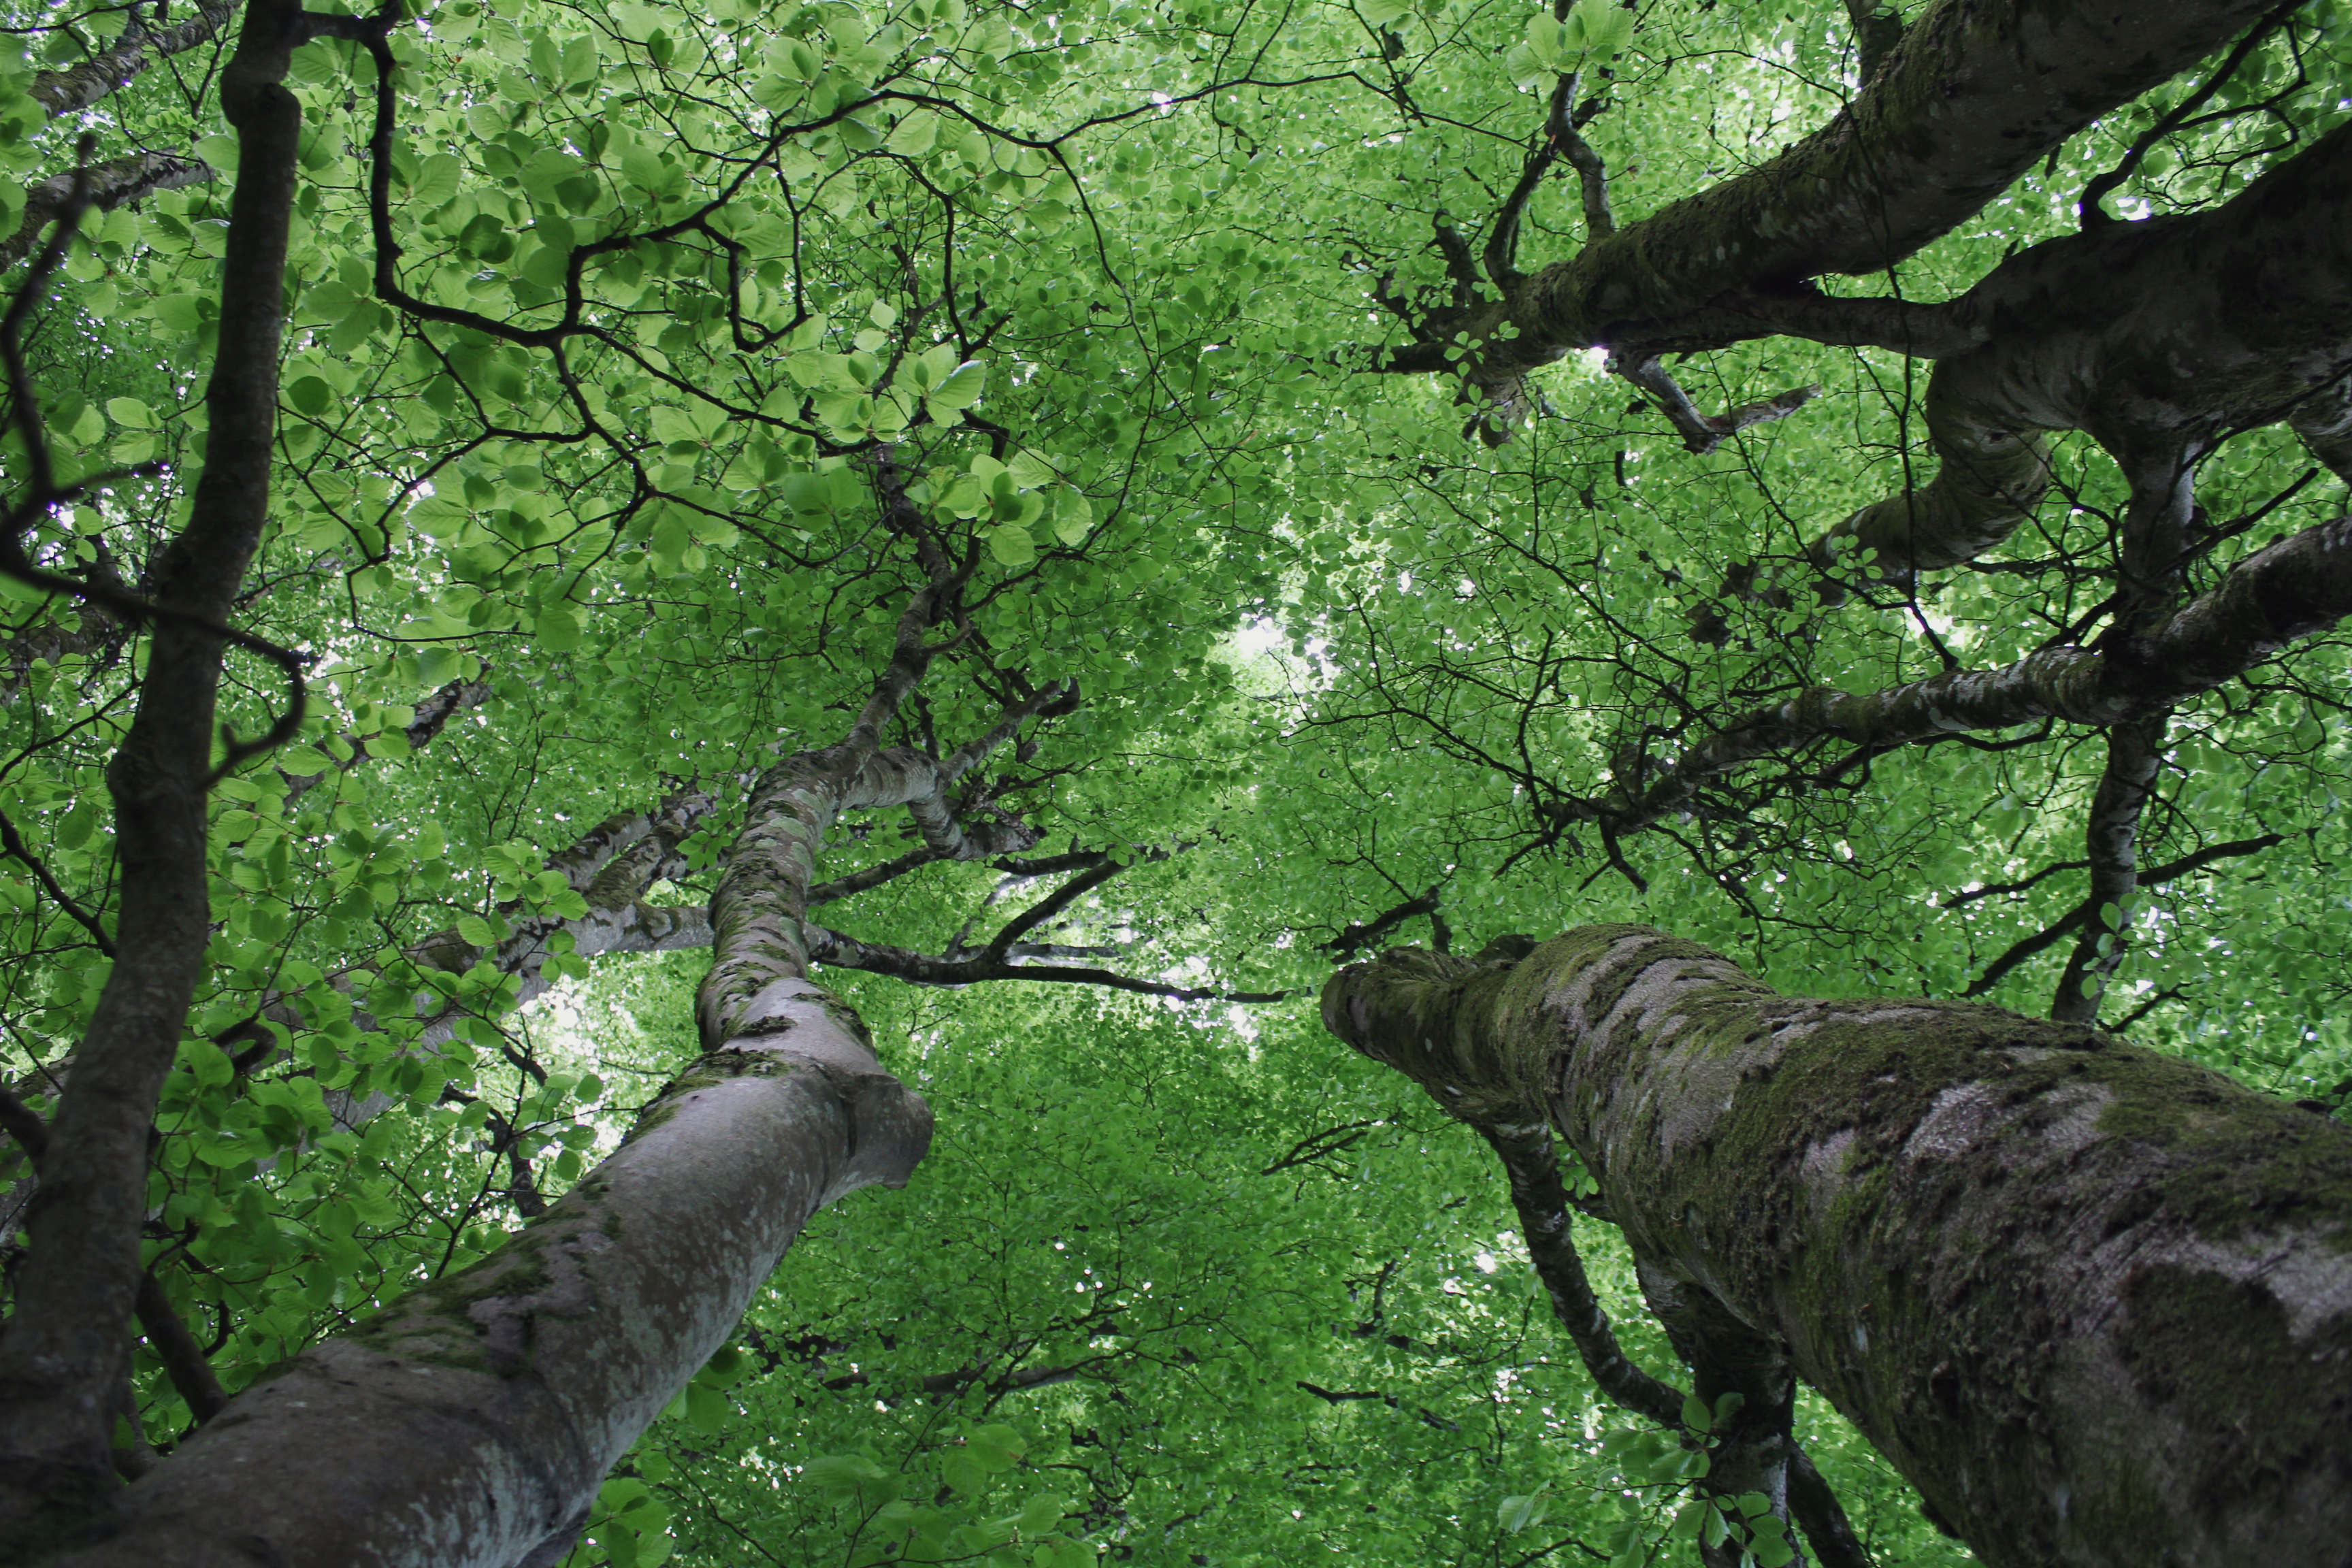 Looking up into the beech canopy, early summer in the forest